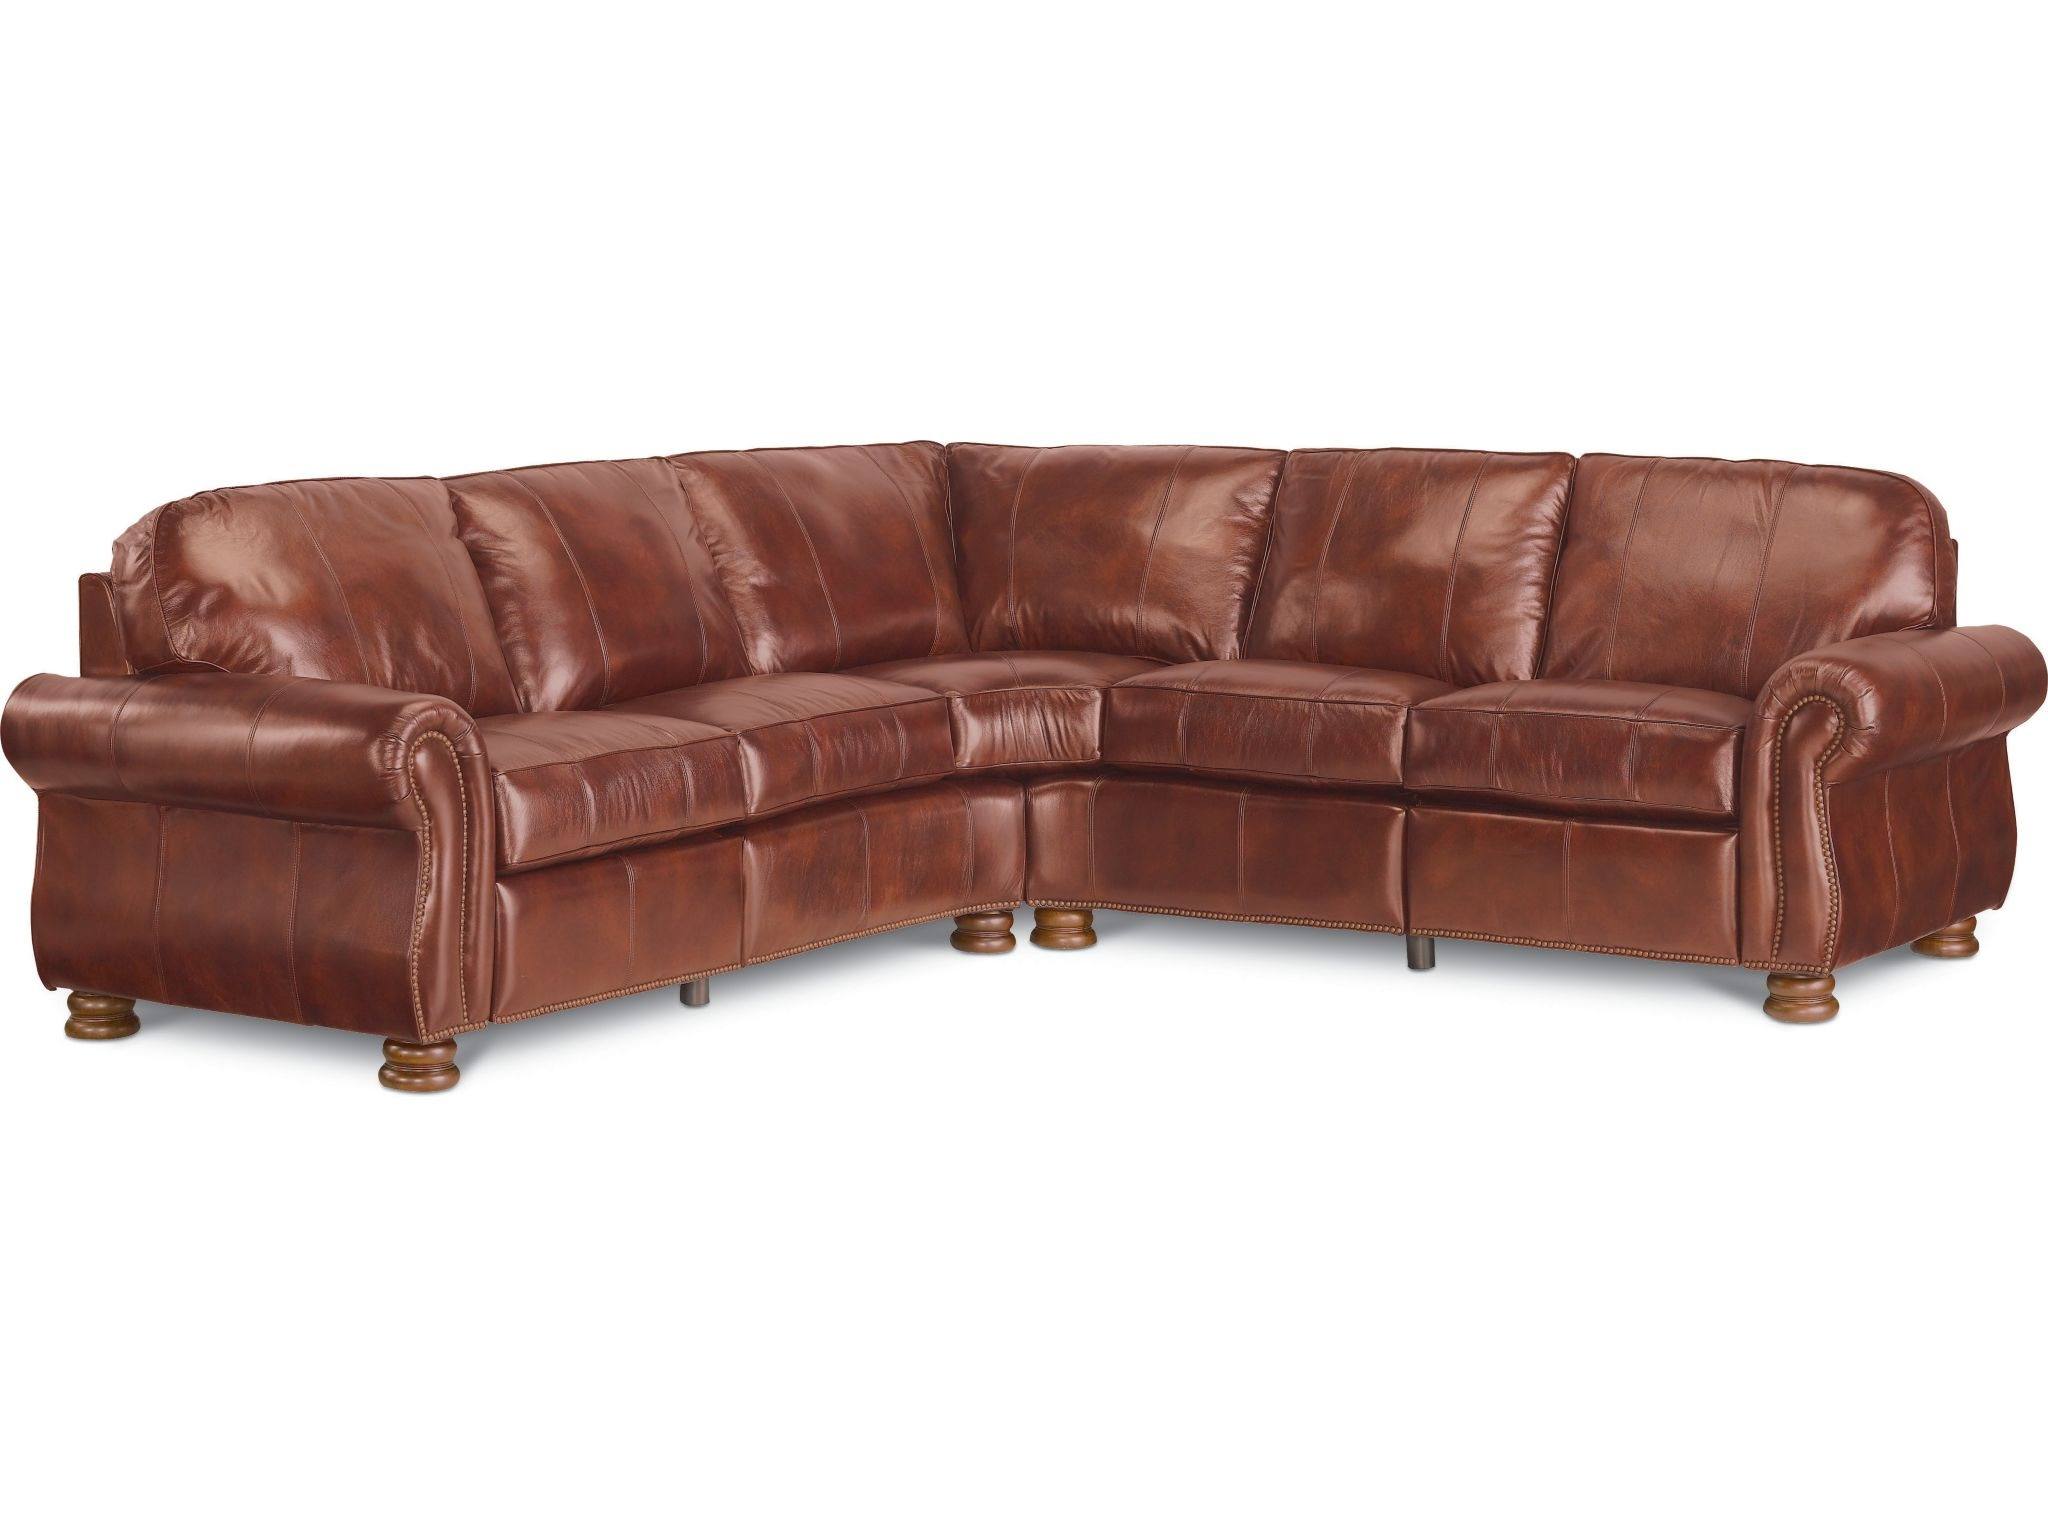 Ordinaire Thomasville Benjamin Motion L/A Sofa With Half Wedge (Incliner) HS1462 L23I